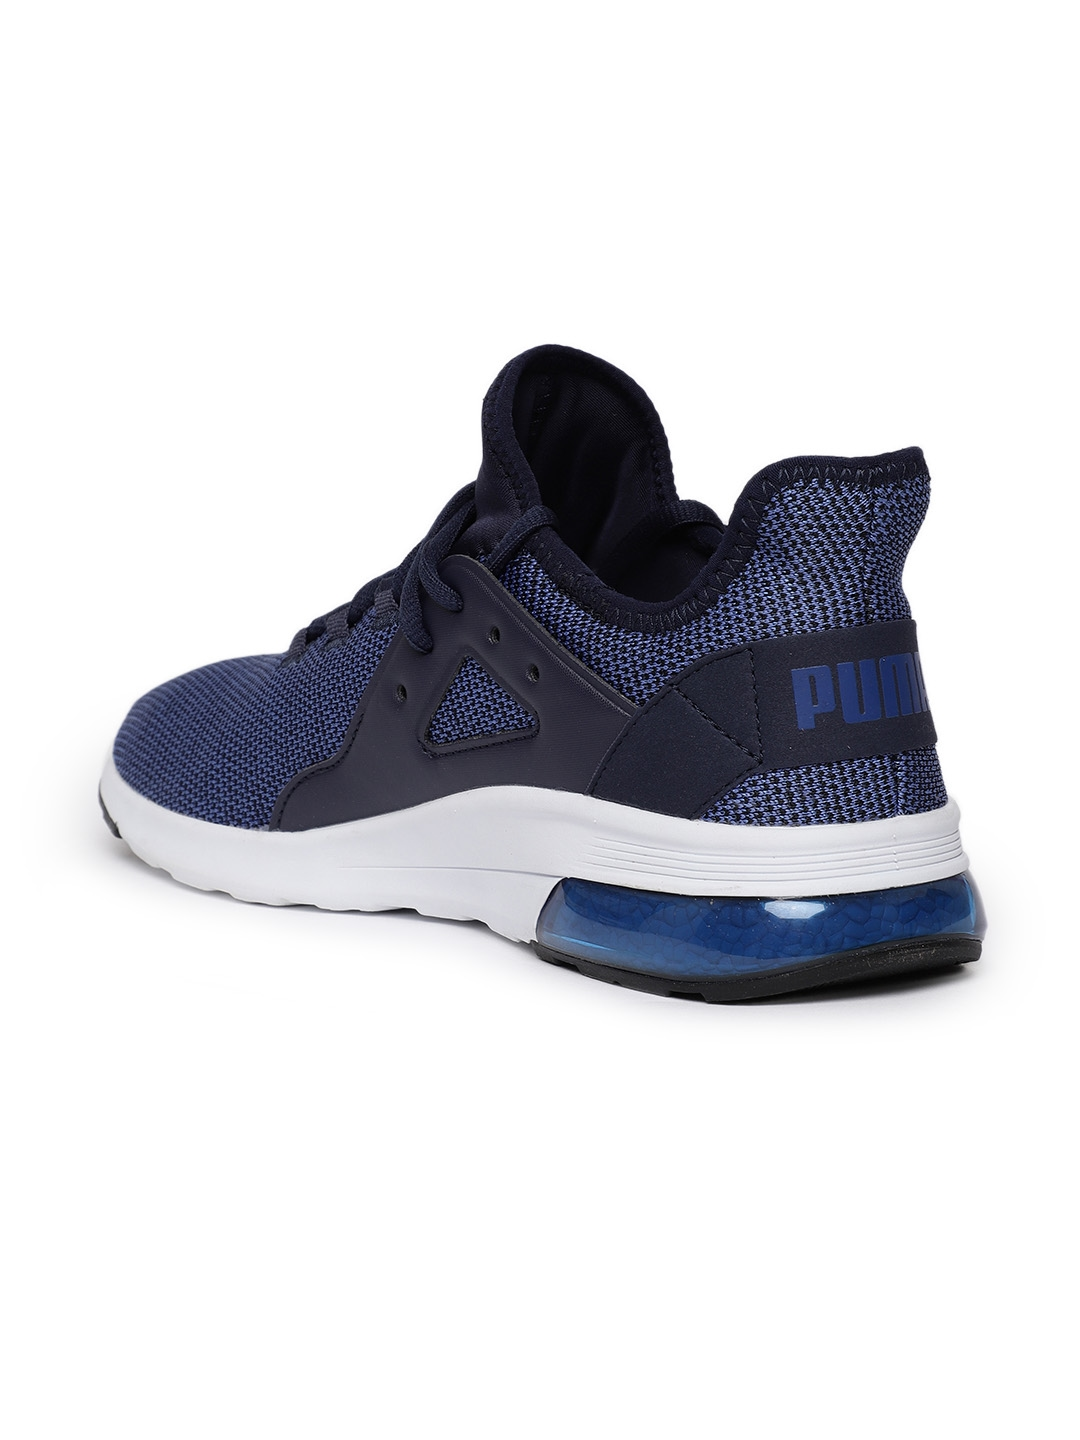 d821c5ae782 Buy Puma Men Navy Blue Electron Street Knit Casual Shoes - Casual ...